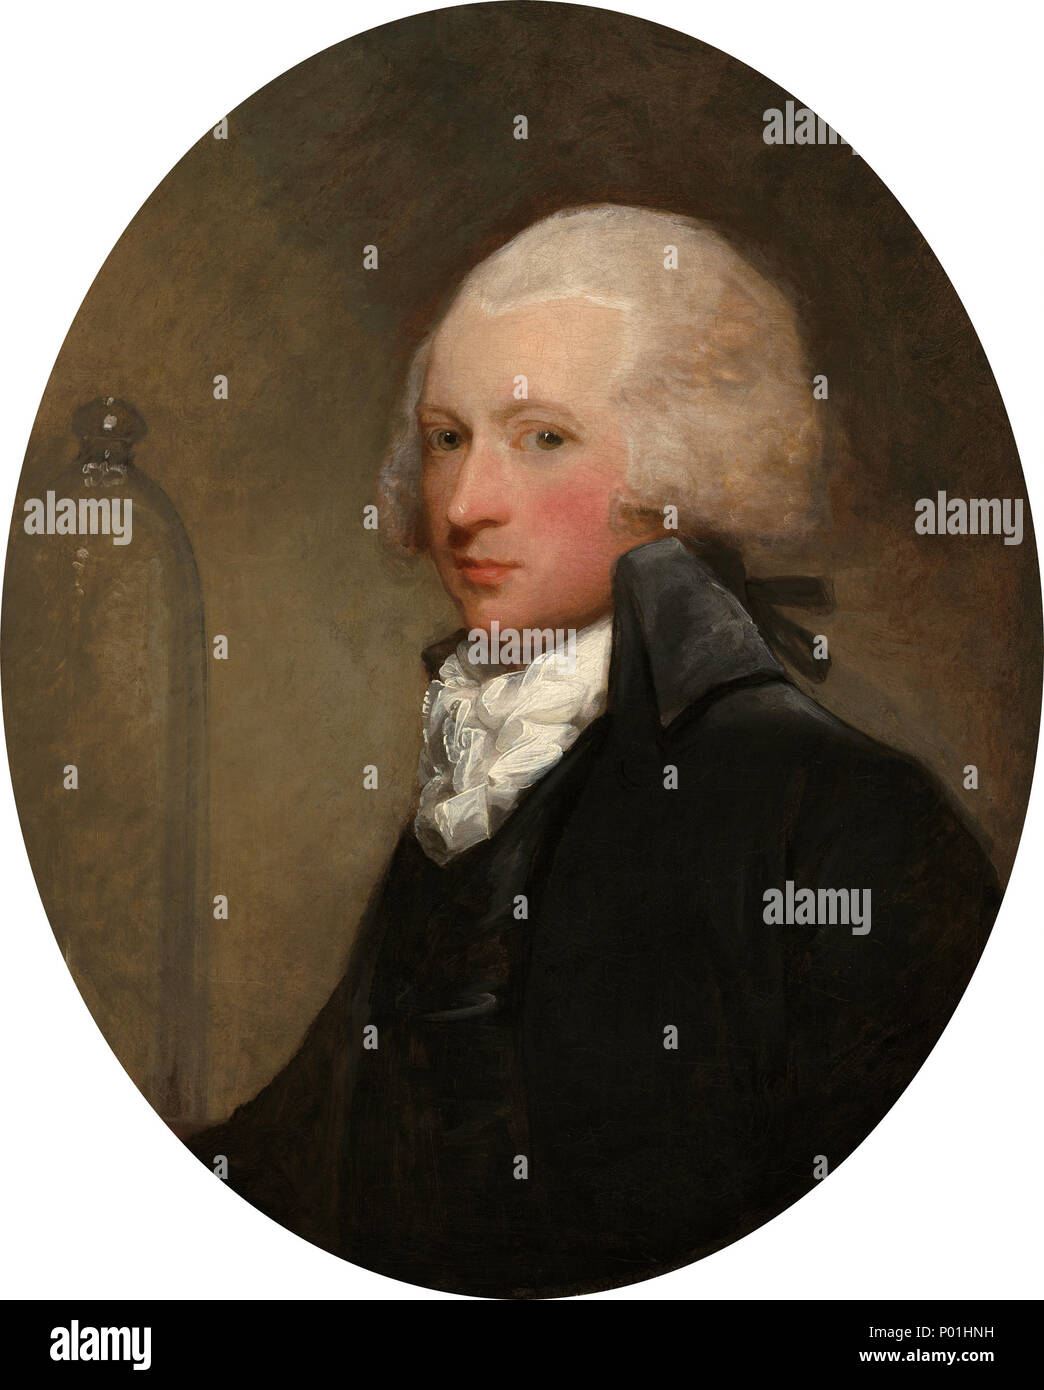 Painting; oil on canvas; overall: 76.2 x 63.5 cm (30 x 25 in.) framed: 97.2 x 84.8 cm (38 1/4 x 33 3/8 in.); 8 Dr. William Hartigan A28096 - Stock Image